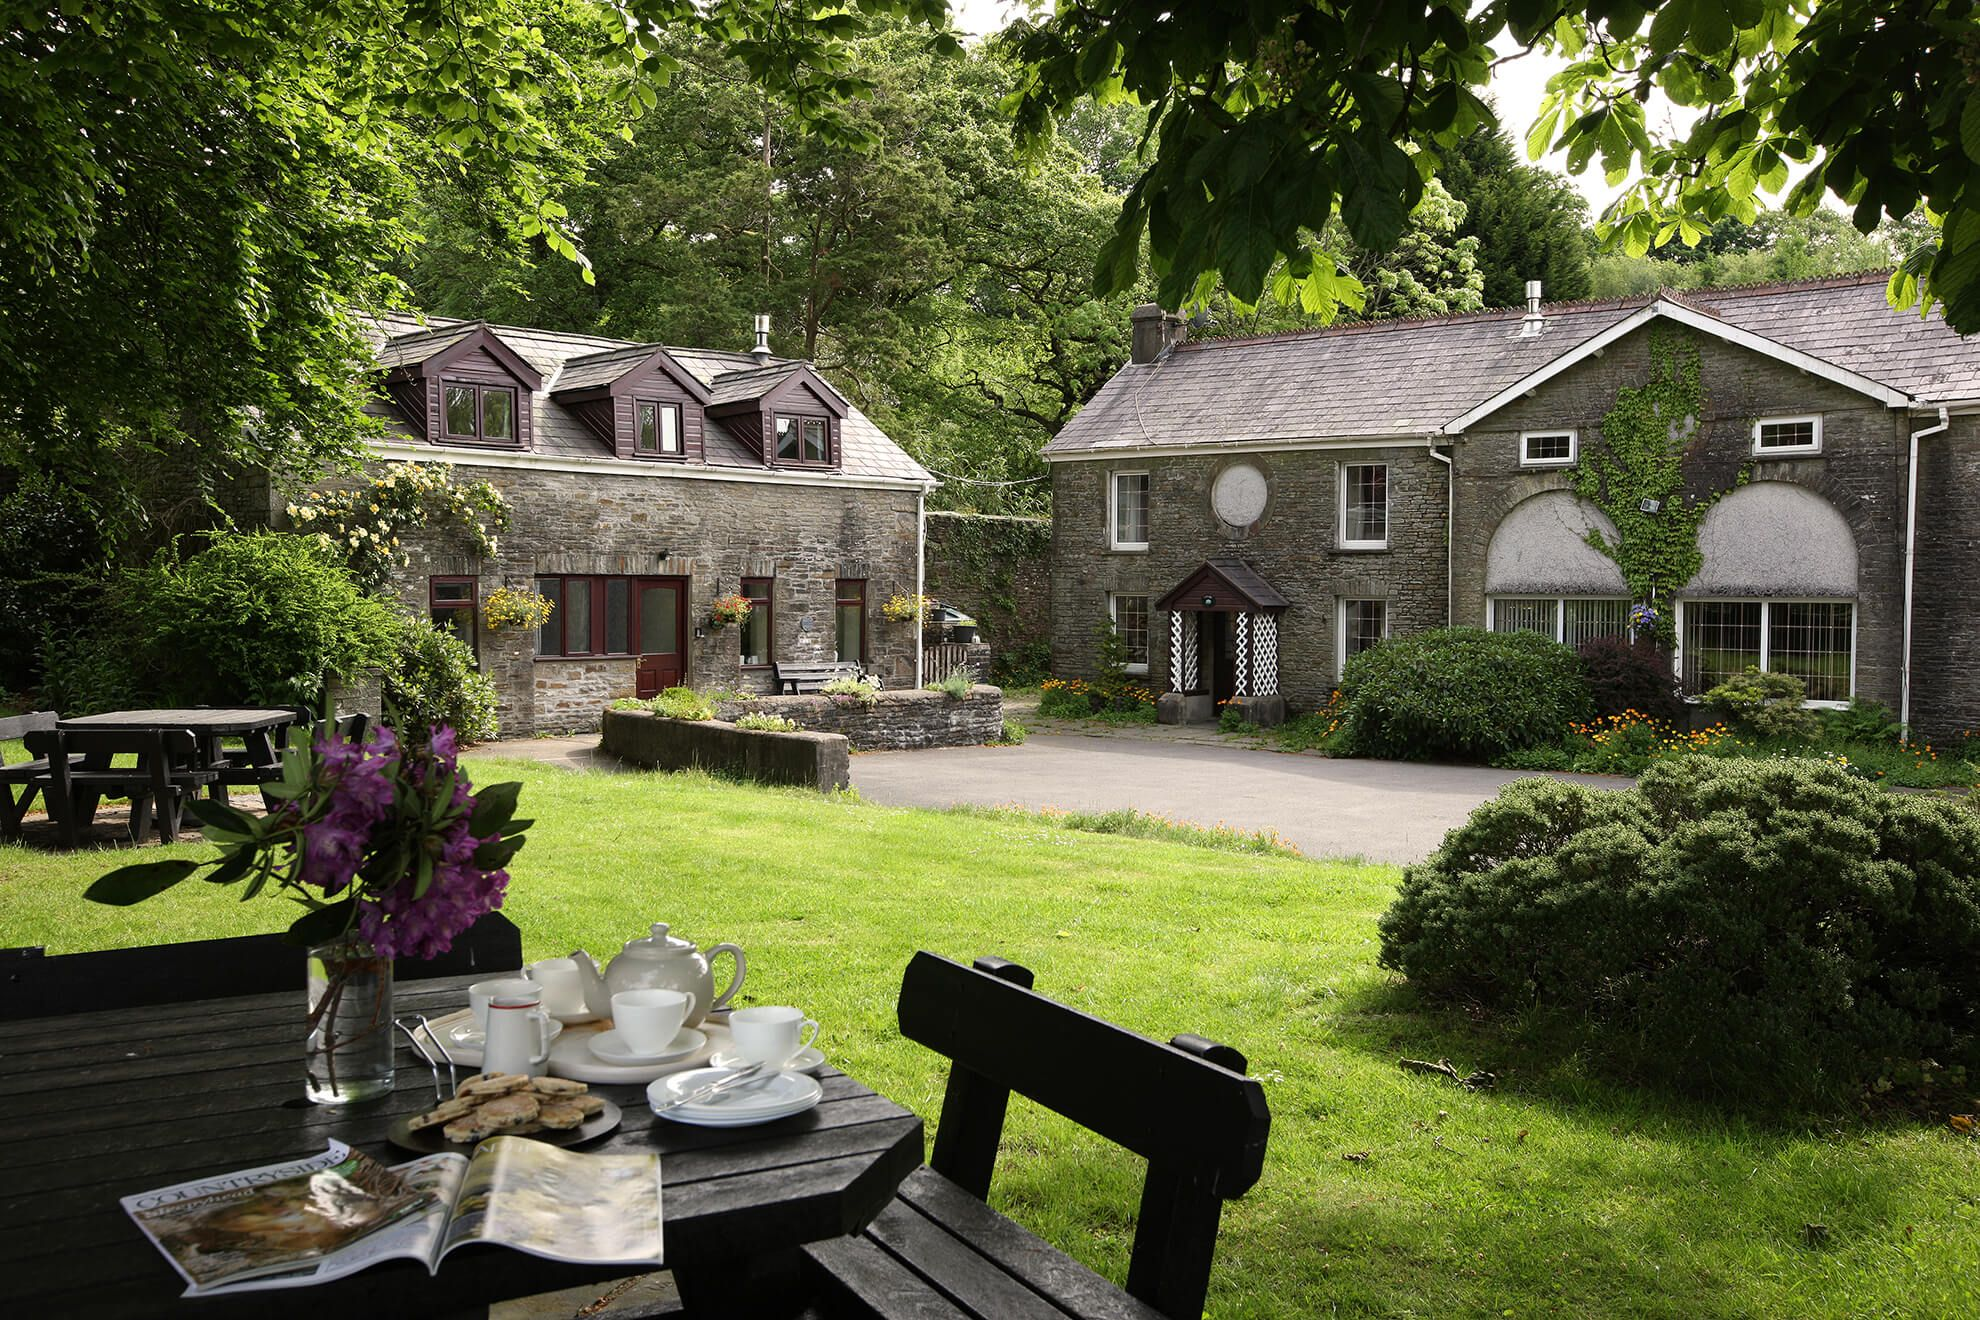 Afternoon tea on the courtyard lawn (Hafod Y Wennol is on the left)